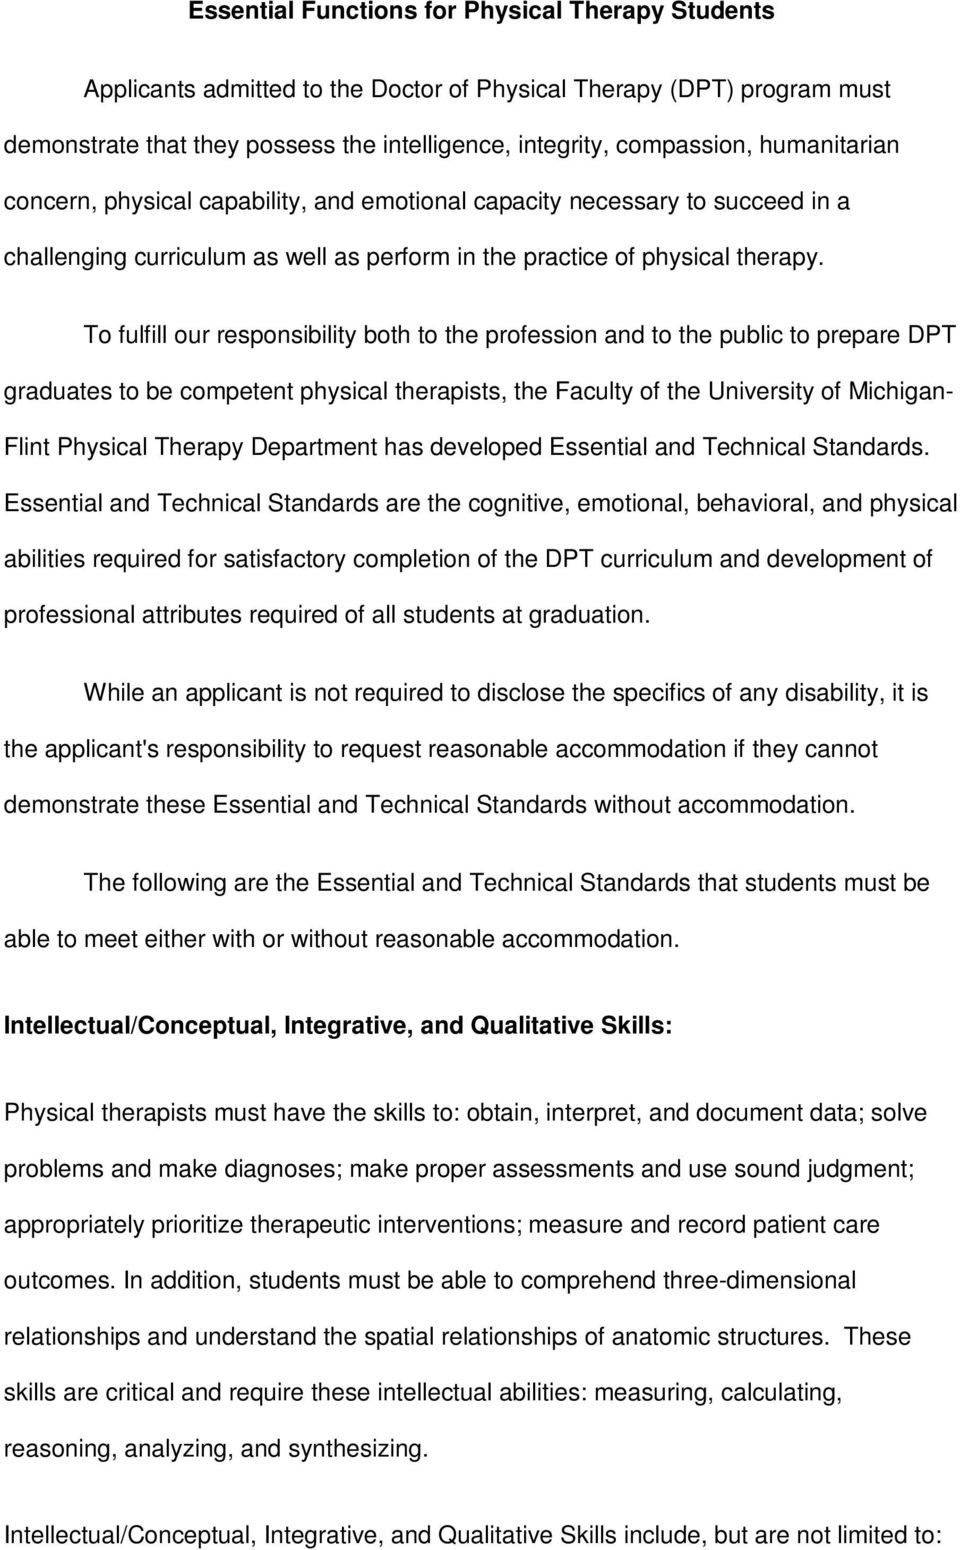 To fulfill our responsibility both to the profession and to the public to prepare DPT graduates to be competent physical therapists, the Faculty of the University of Michigan- Flint Physical Therapy